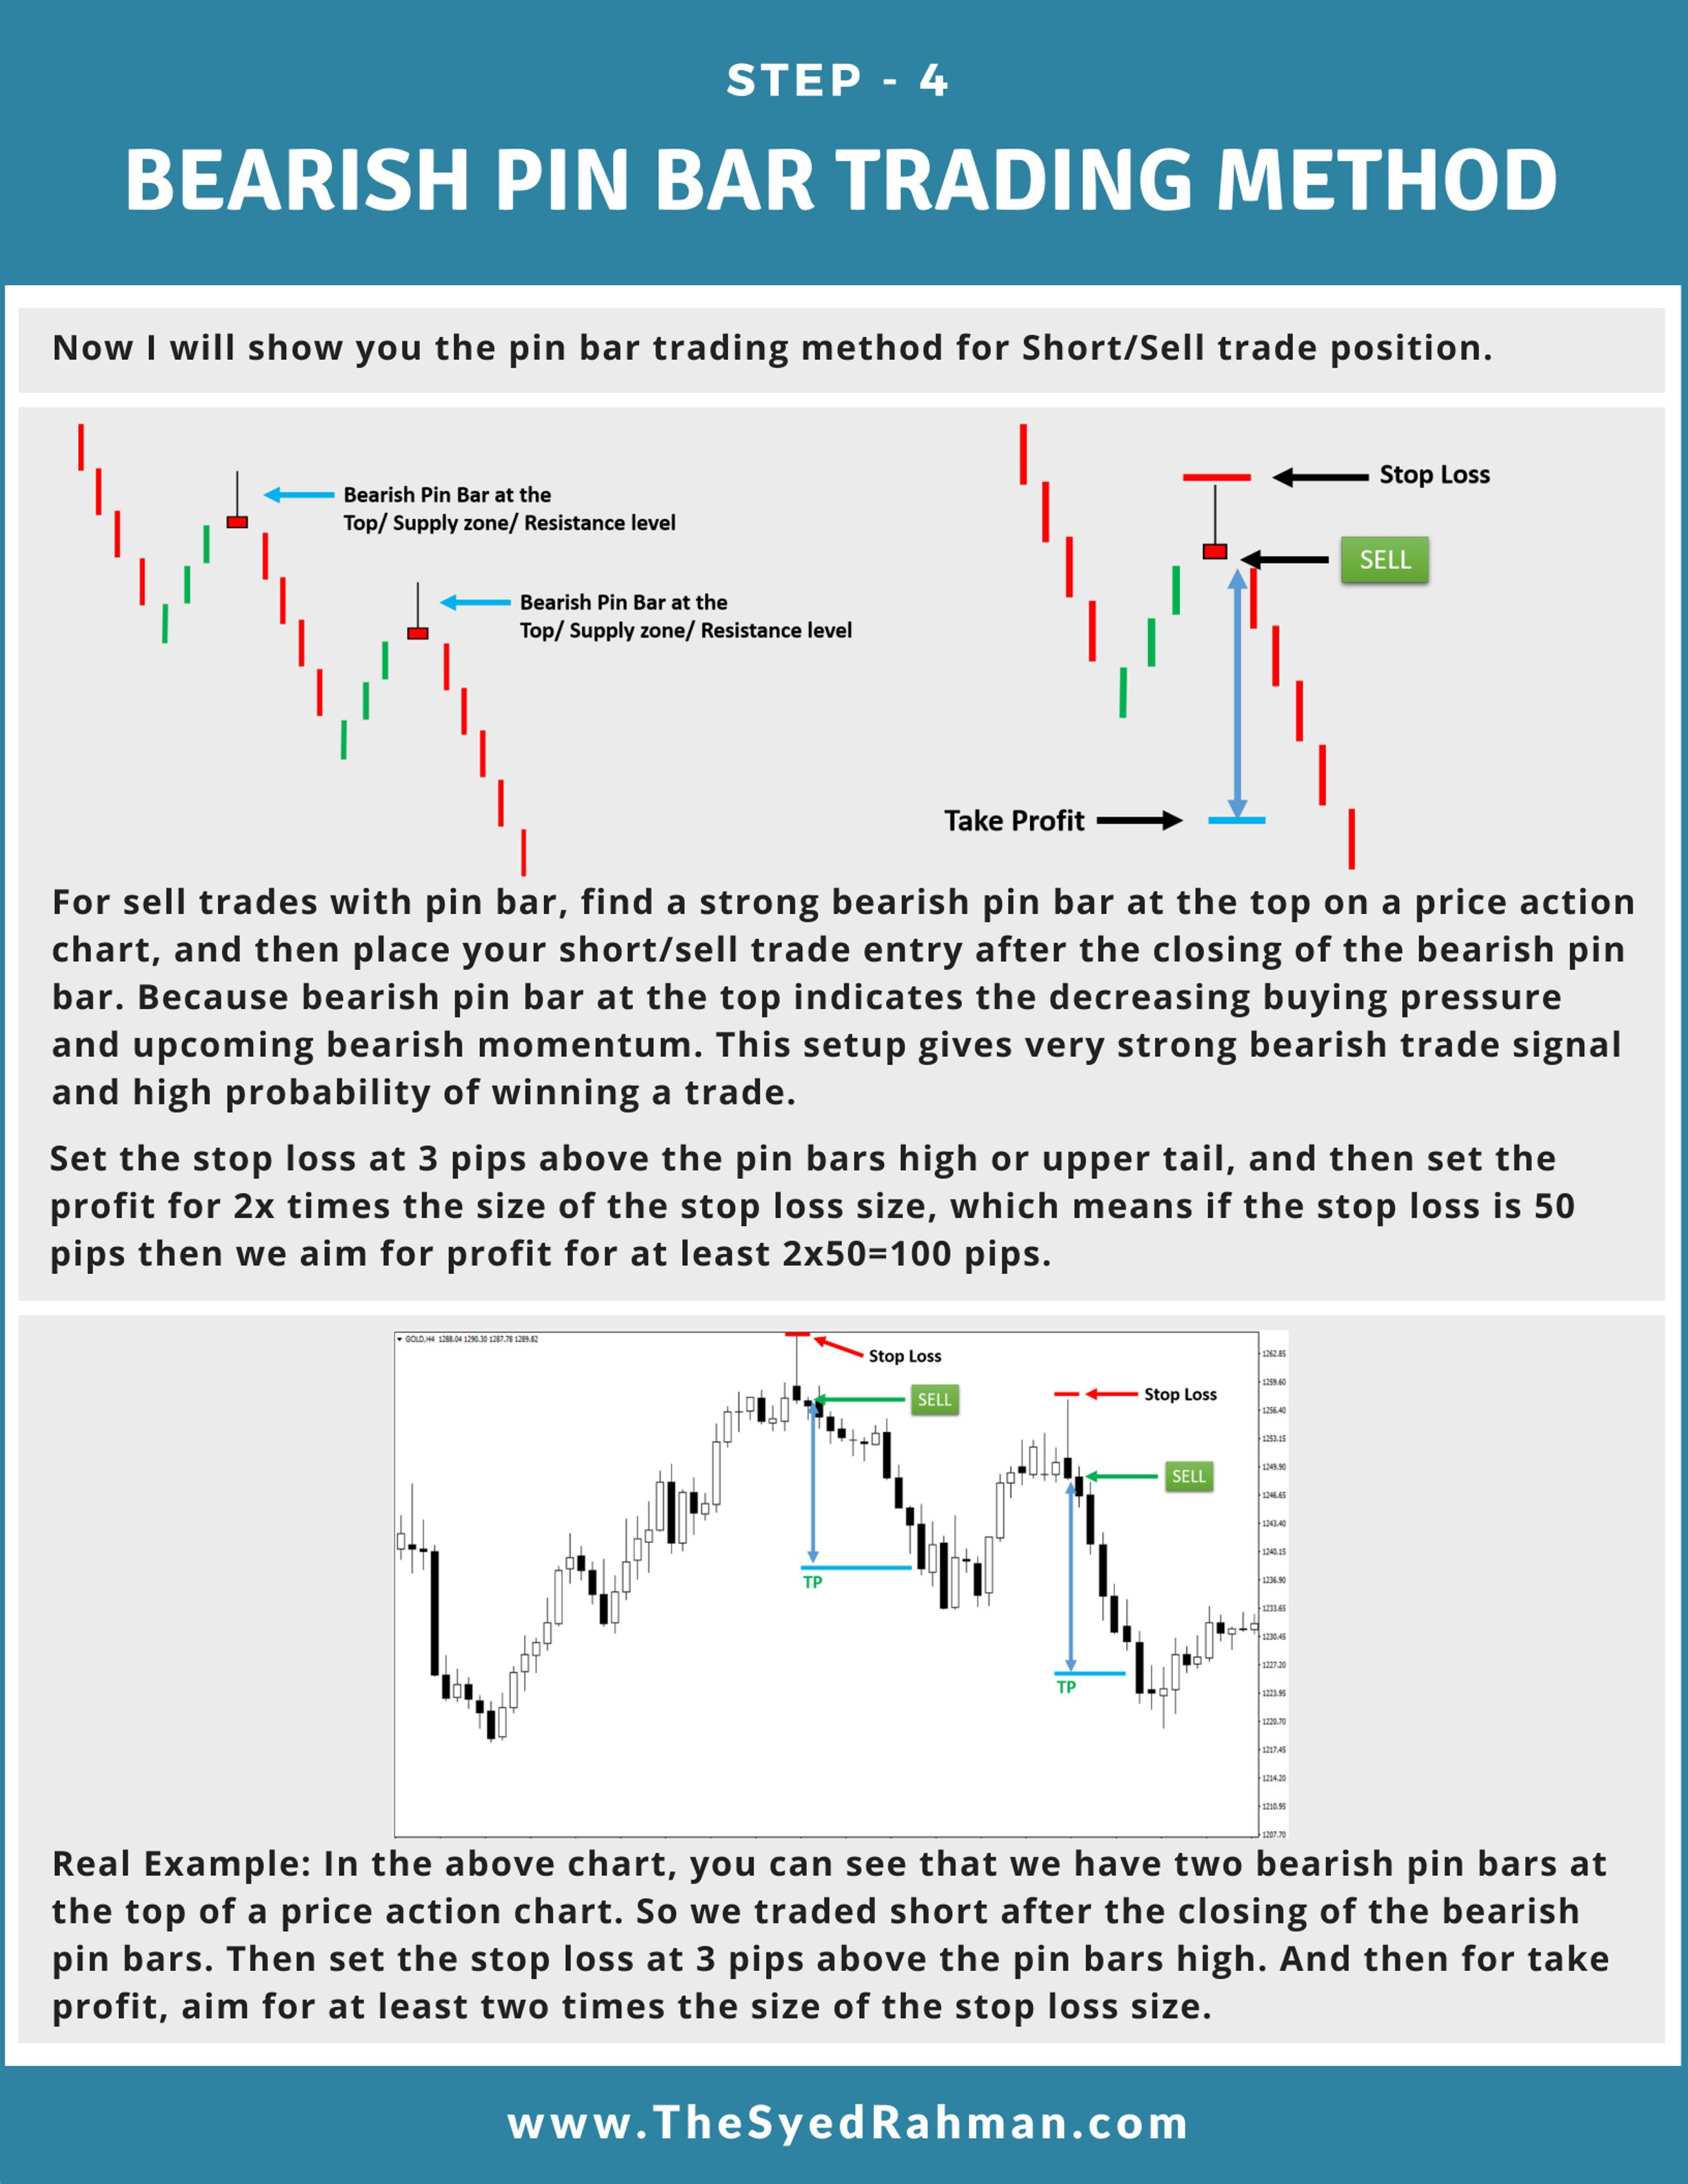 Profitable Bearish Pin Bar Trading Strategy Learn How To Use The